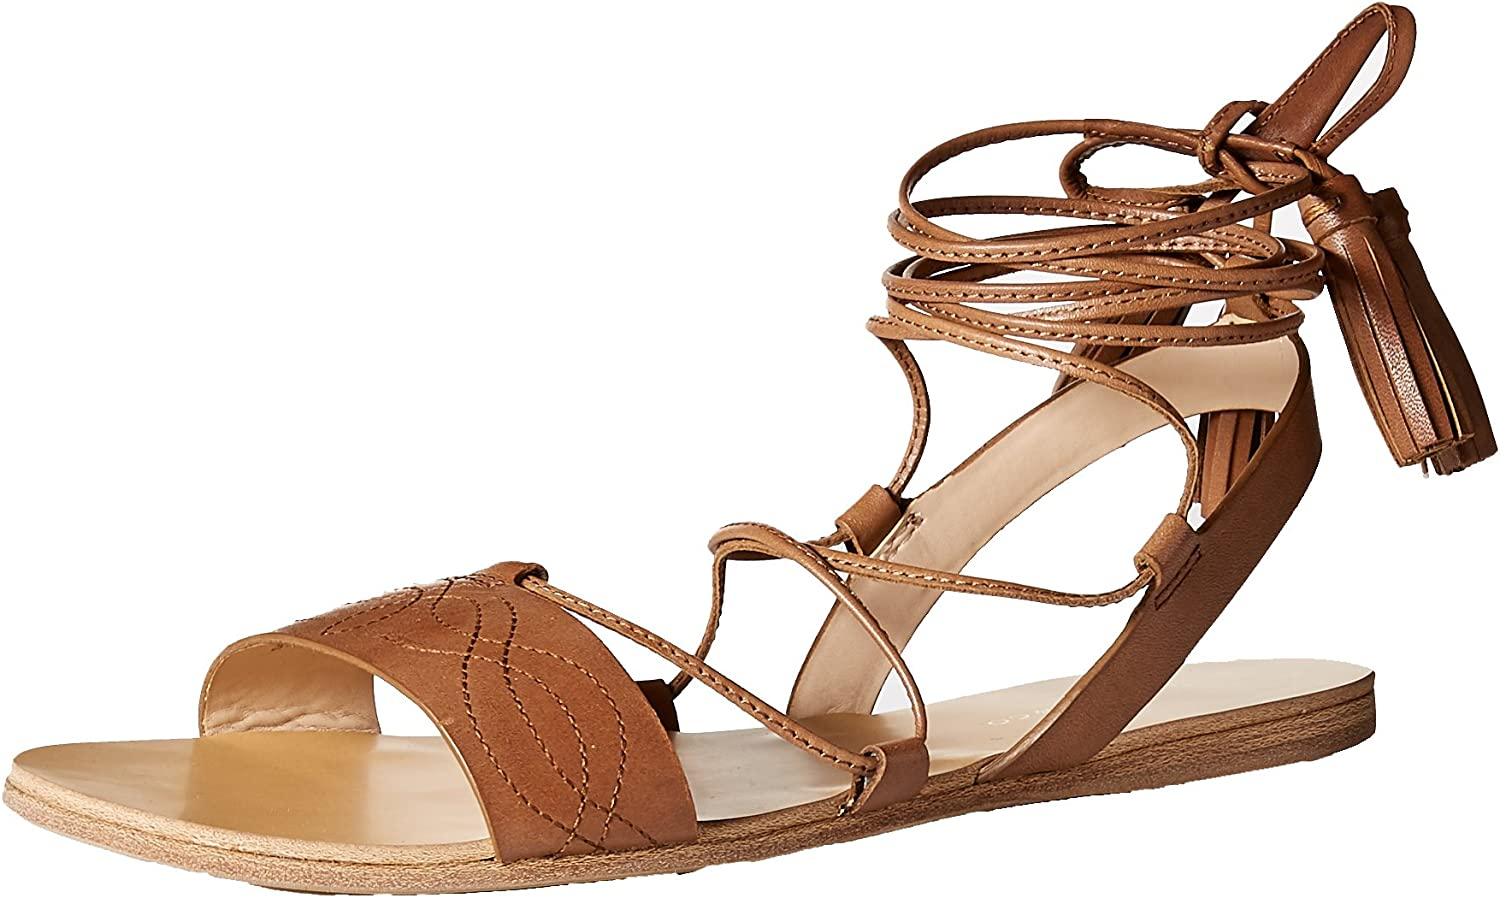 G.H. Bass & Co. Womens Savannah Flat Sandal